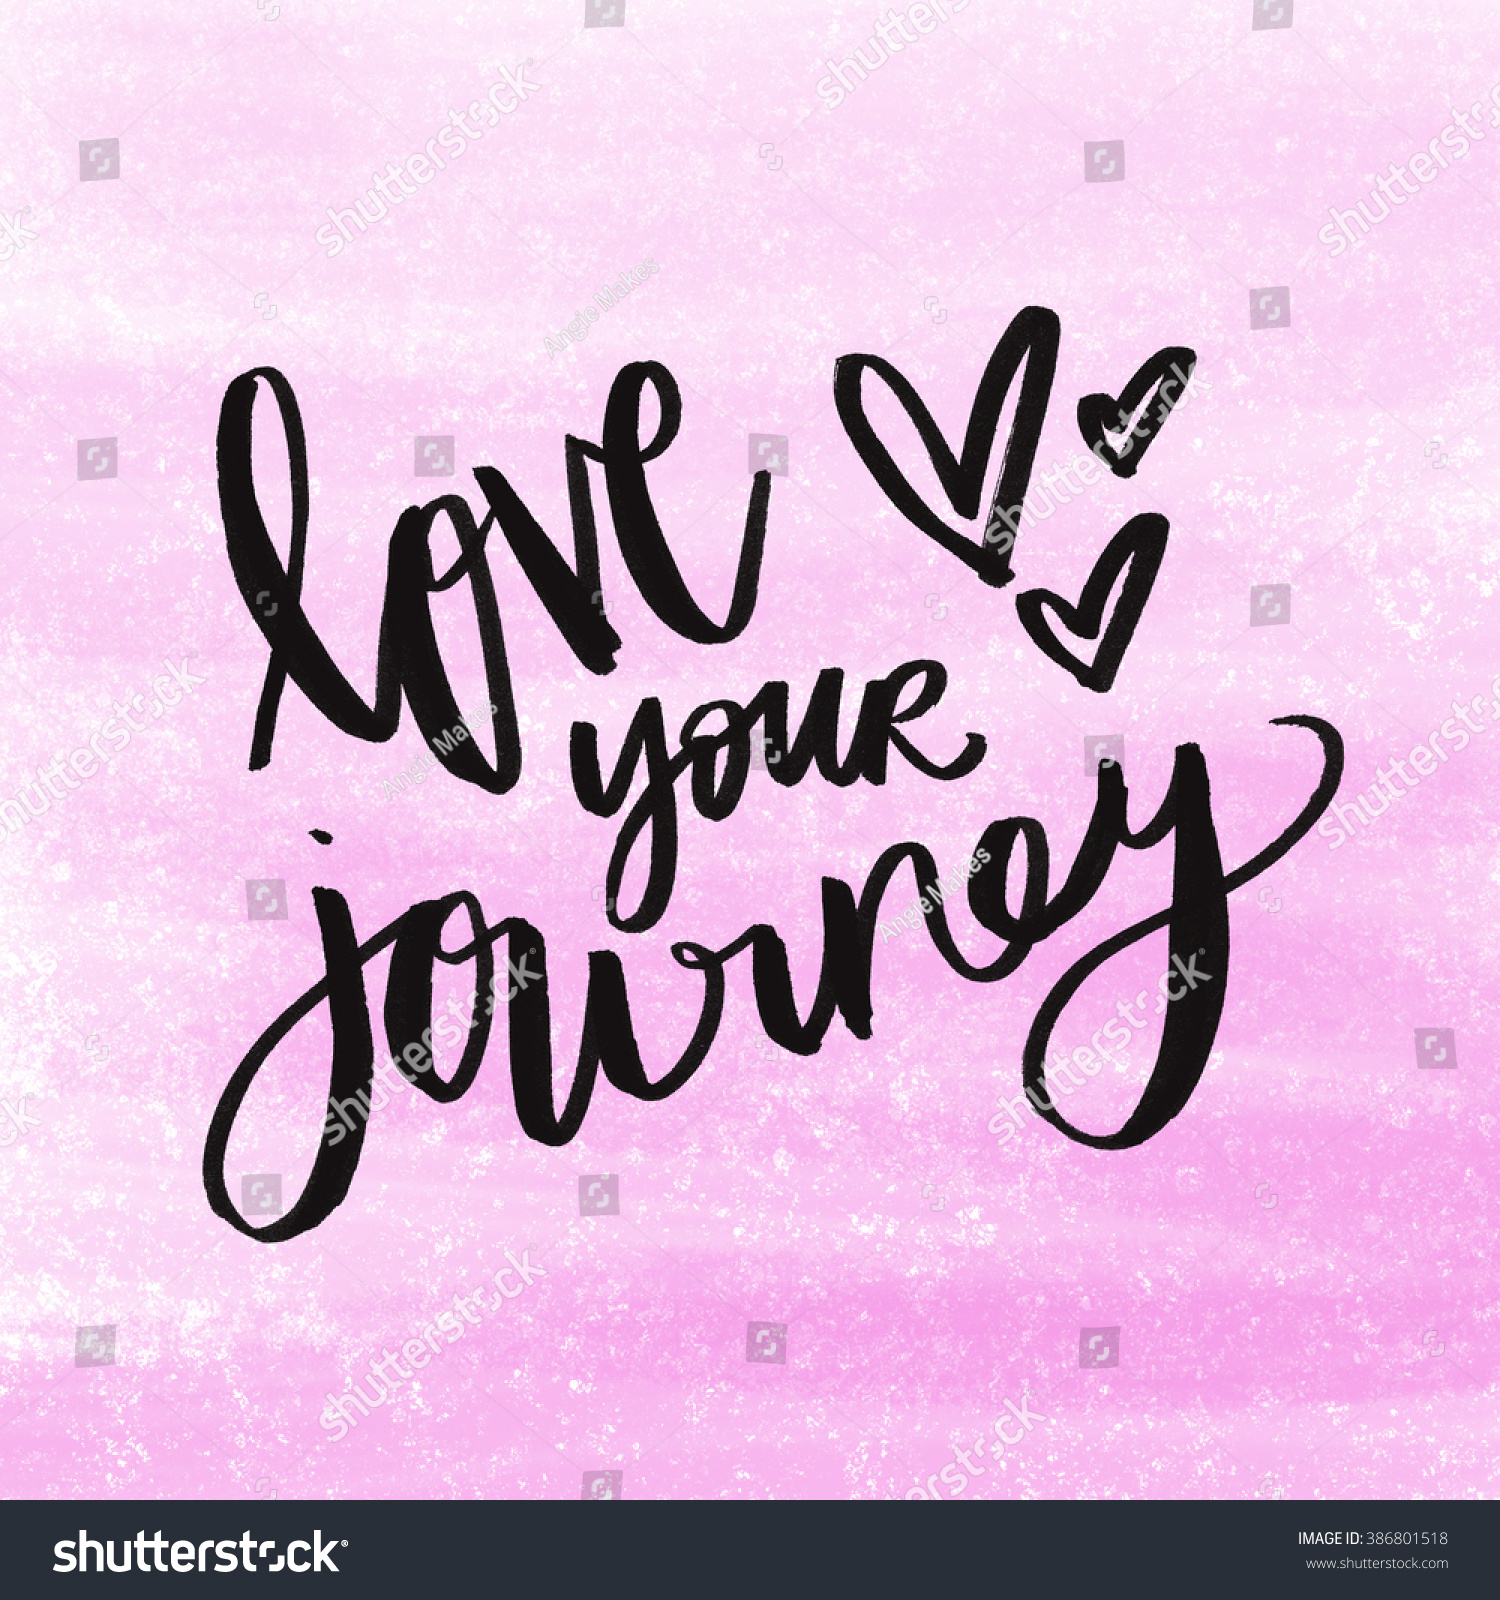 Royalty Free Stock Illustration Of Love Your Journey Quote On Pink